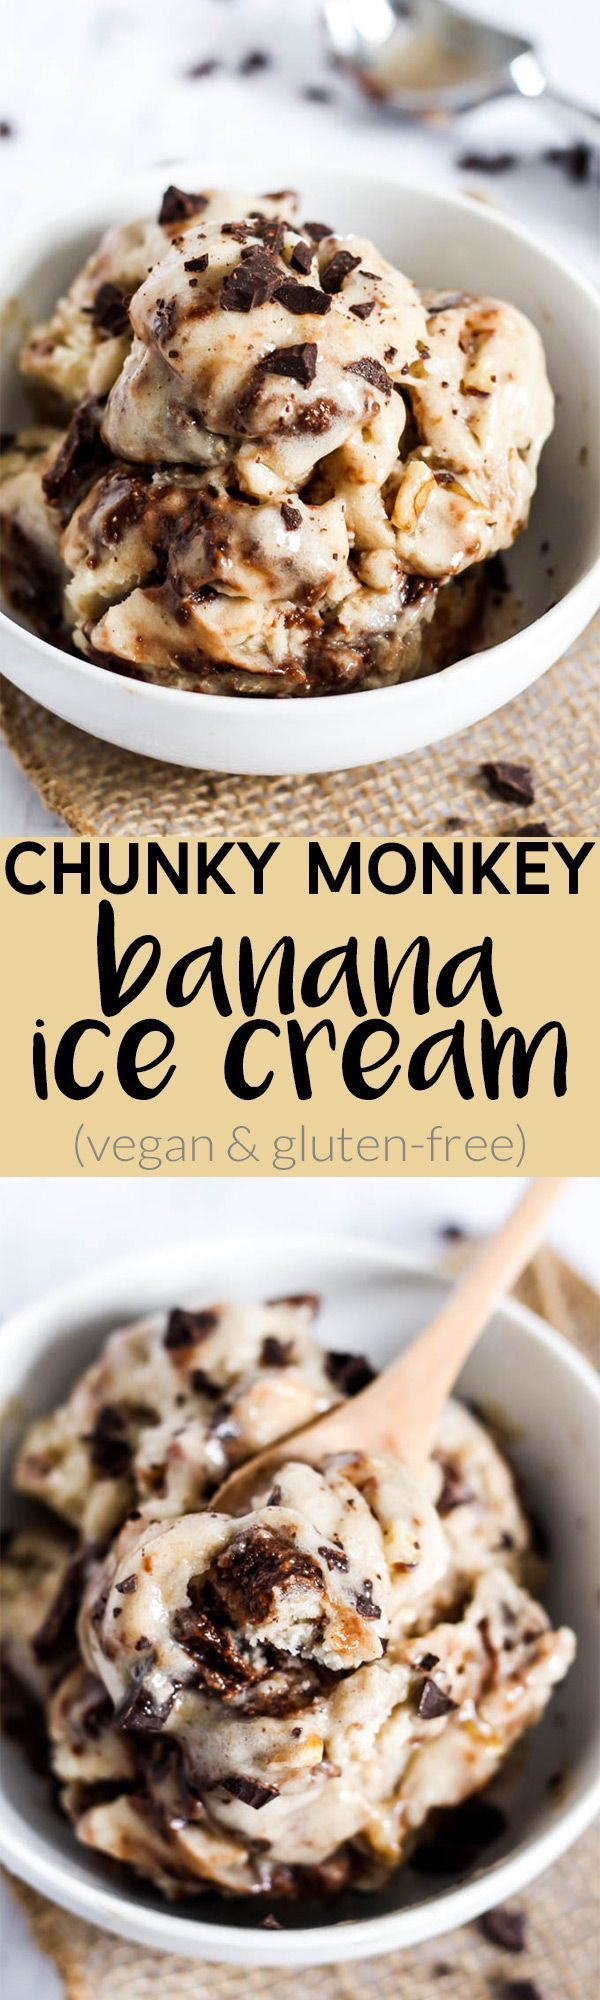 Your favorite flavor of ice cream is getting a vegan, gluten-free makeover! This Chunky Monkey Banana Ice Cream is the best healthy, comfort food dessert.